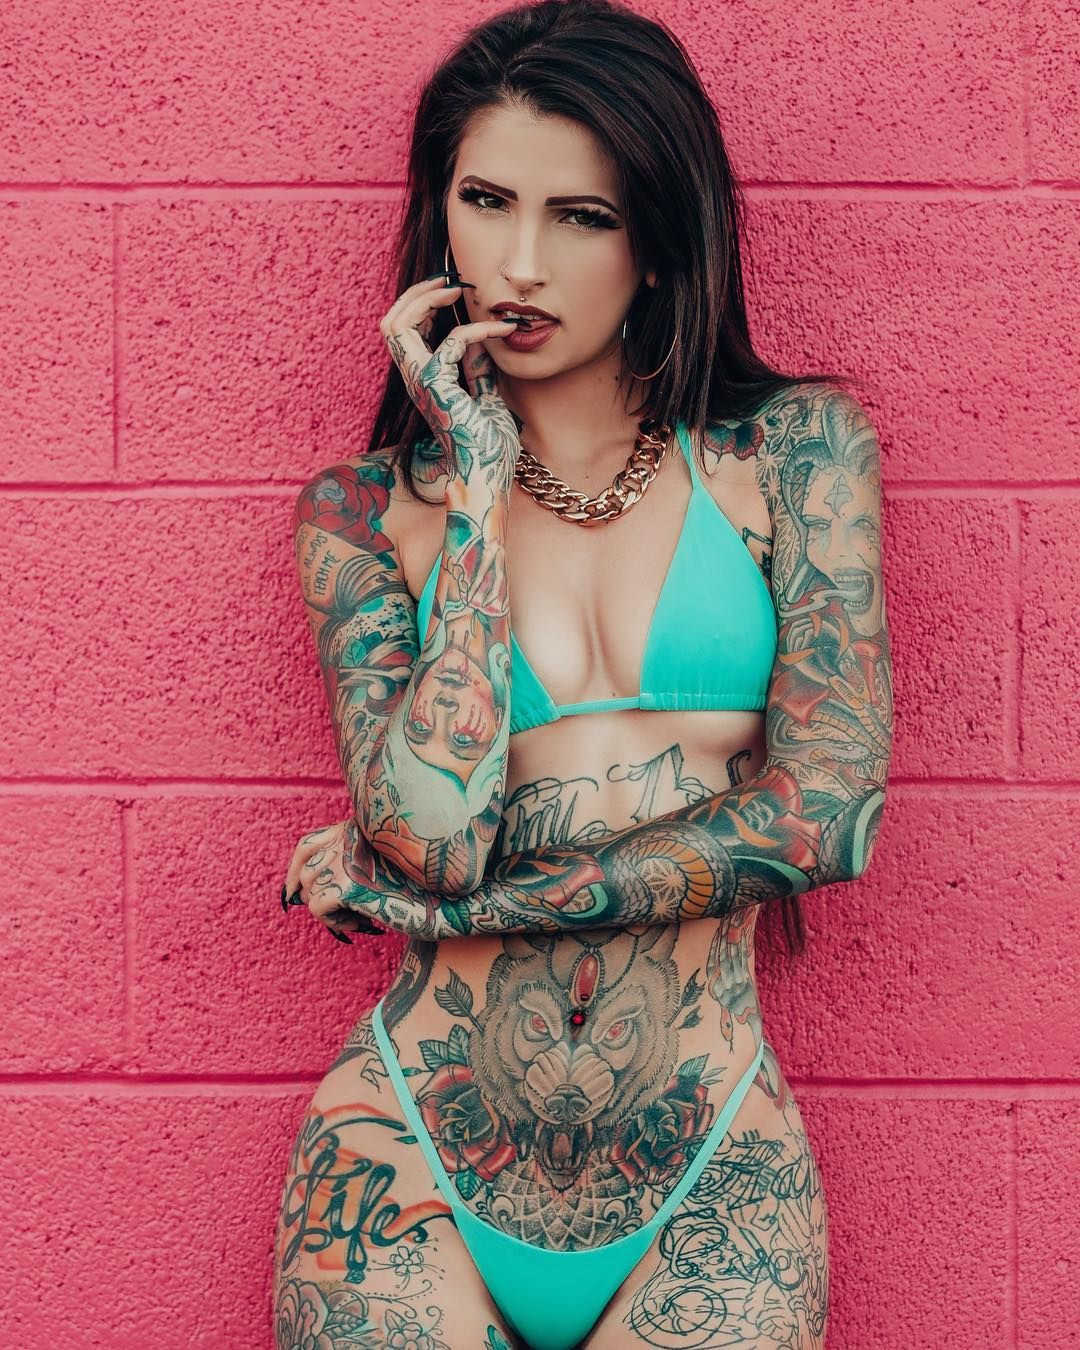 Hot tattoos on women nude #1